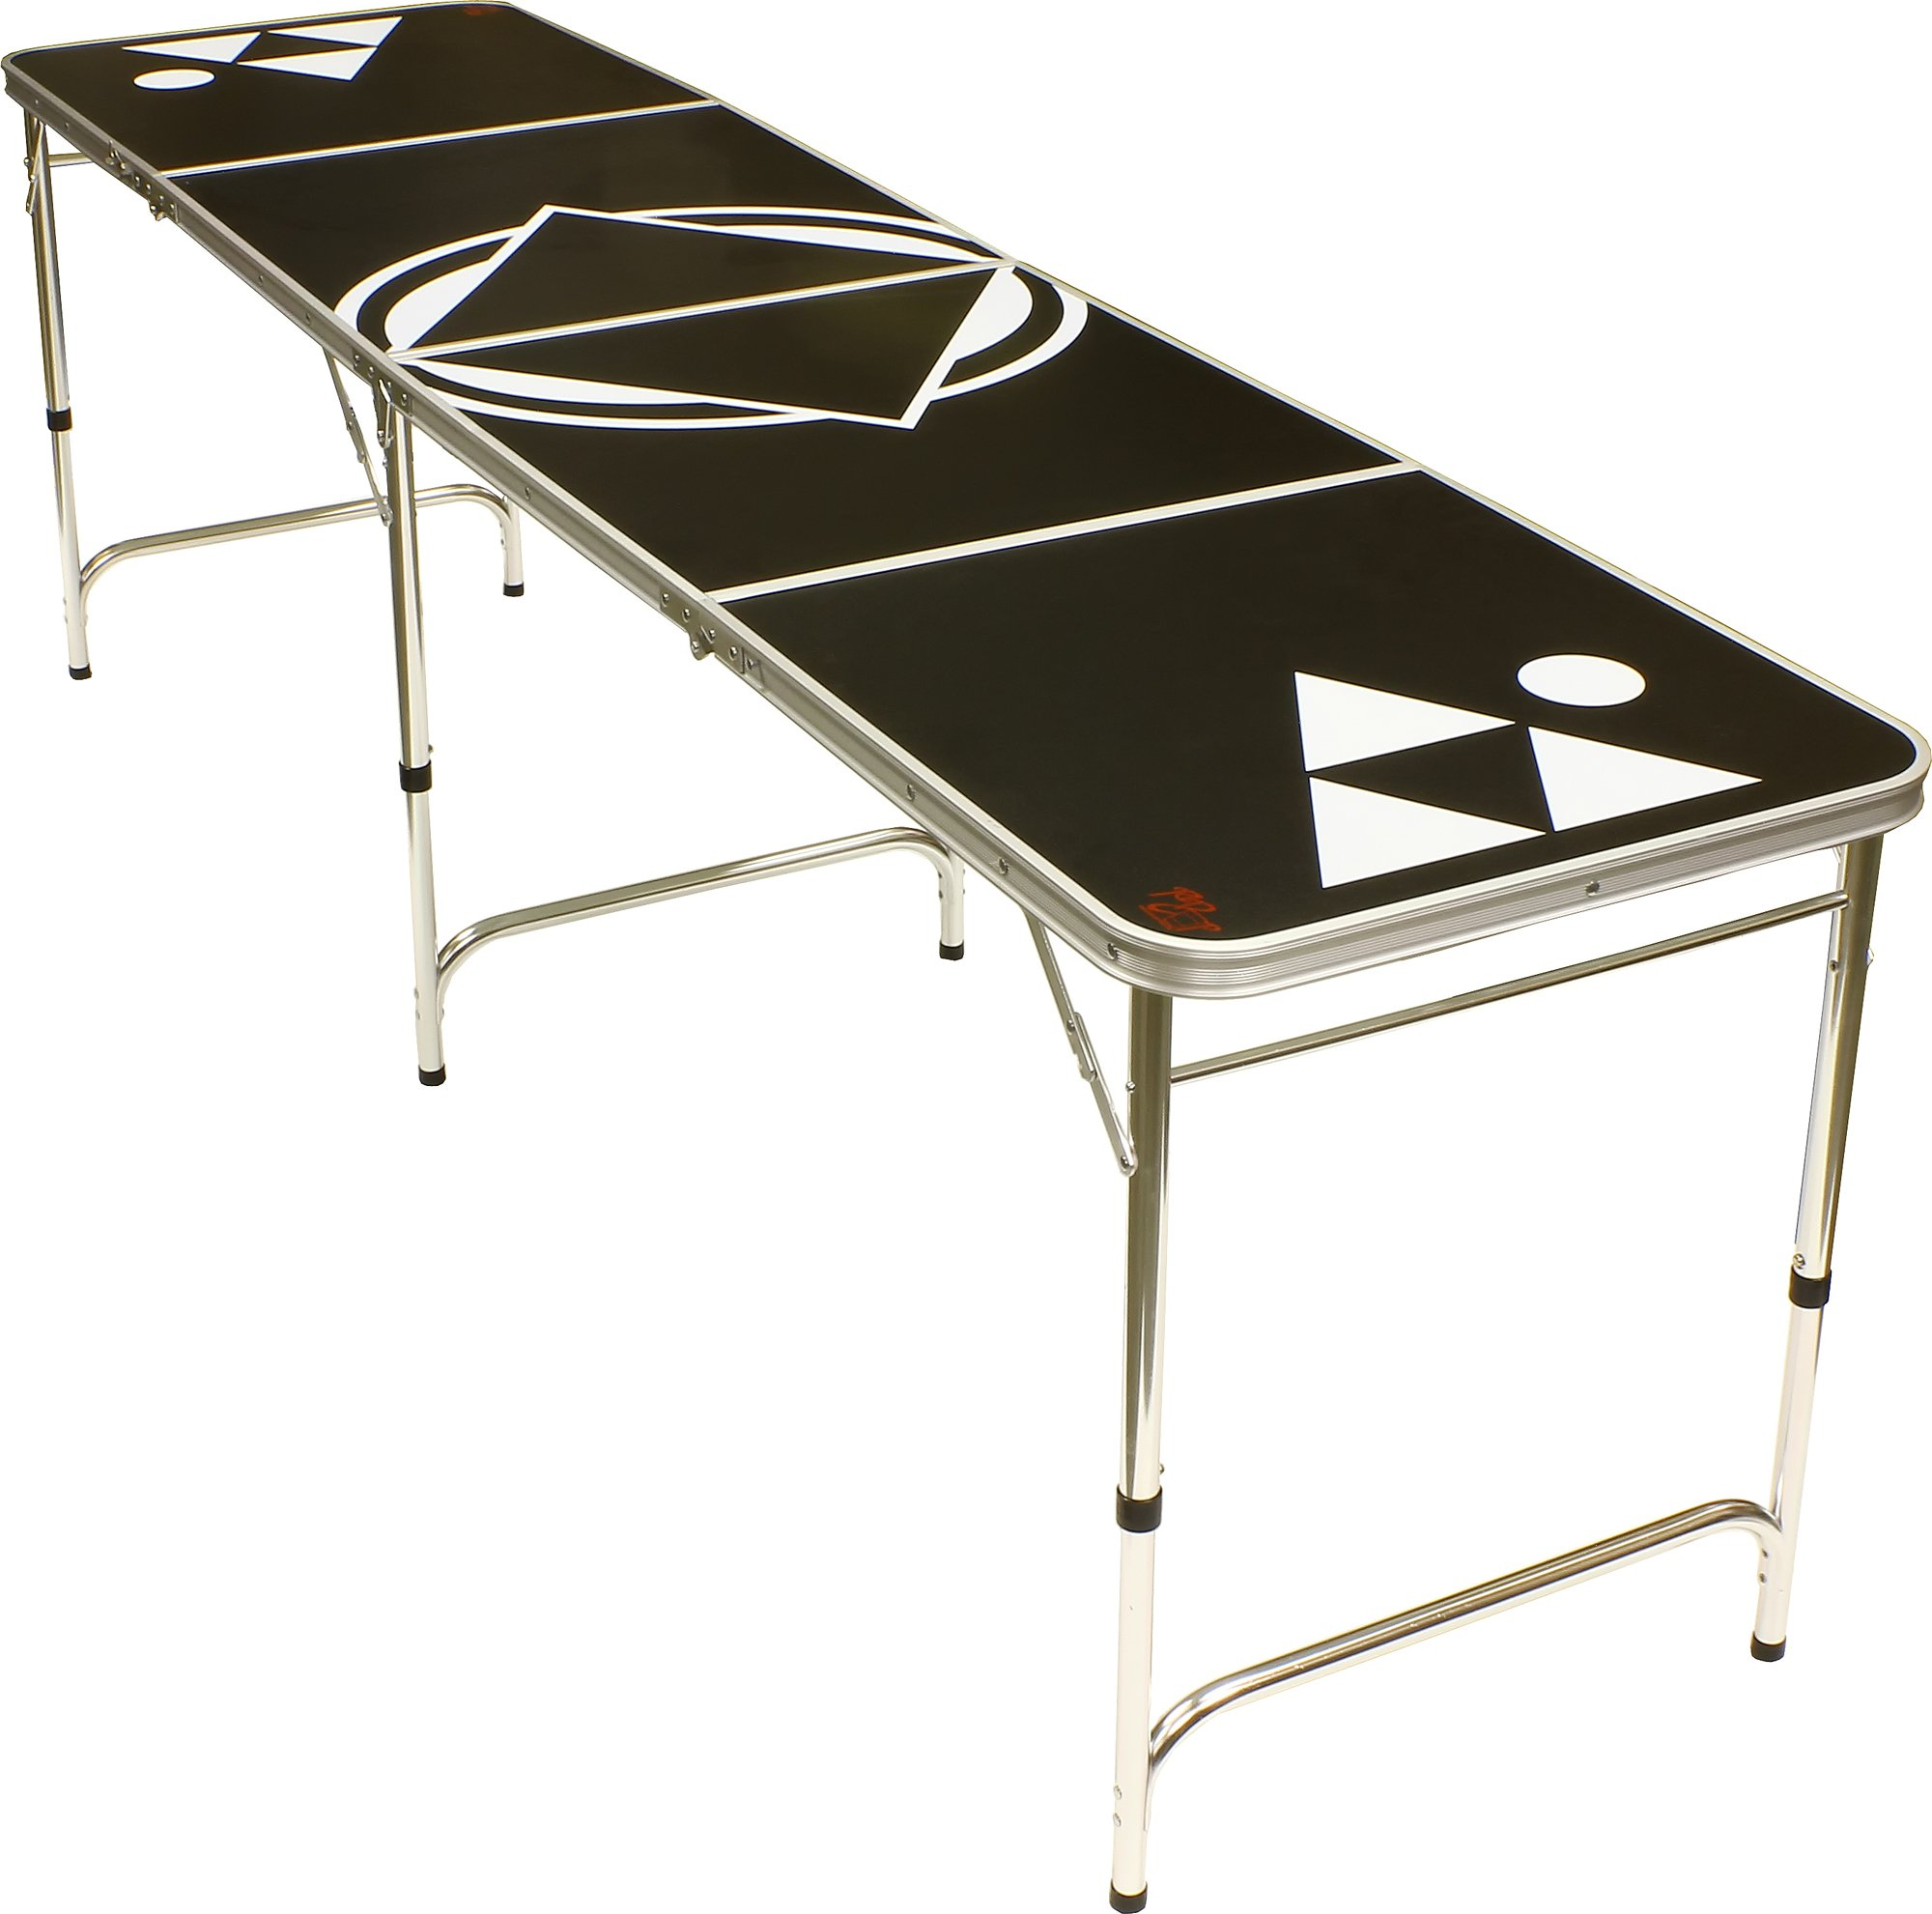 8' Beer Pong Table - Lightweight & Portable with Carrying Handles by Red Cup Pong (Black)